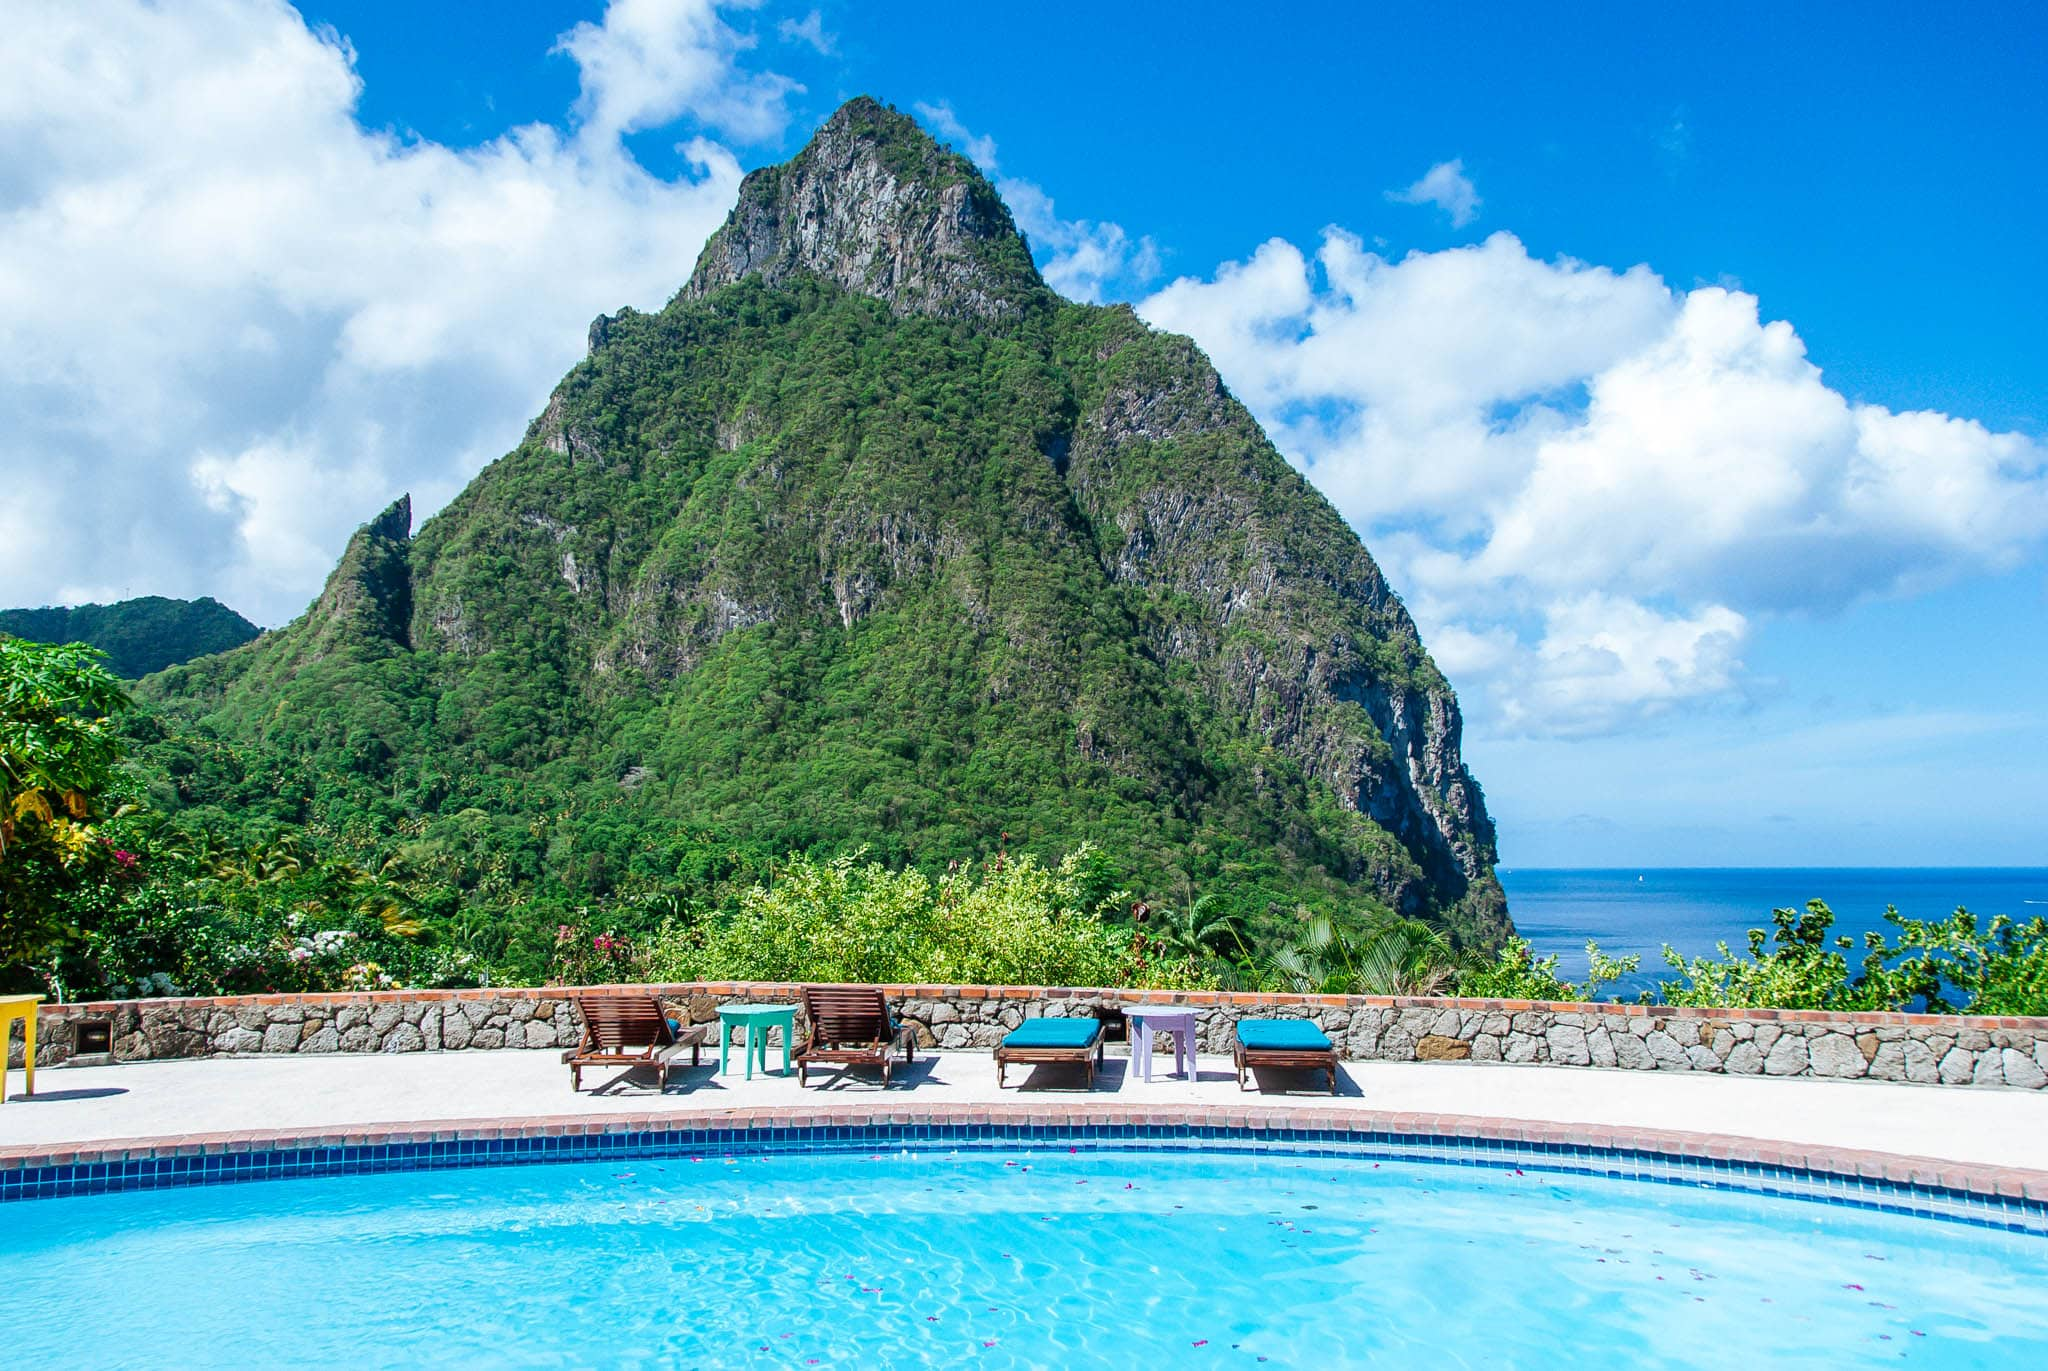 The main pool grants guests the opportunity to bask in the beauty of nearby Petit Piton.